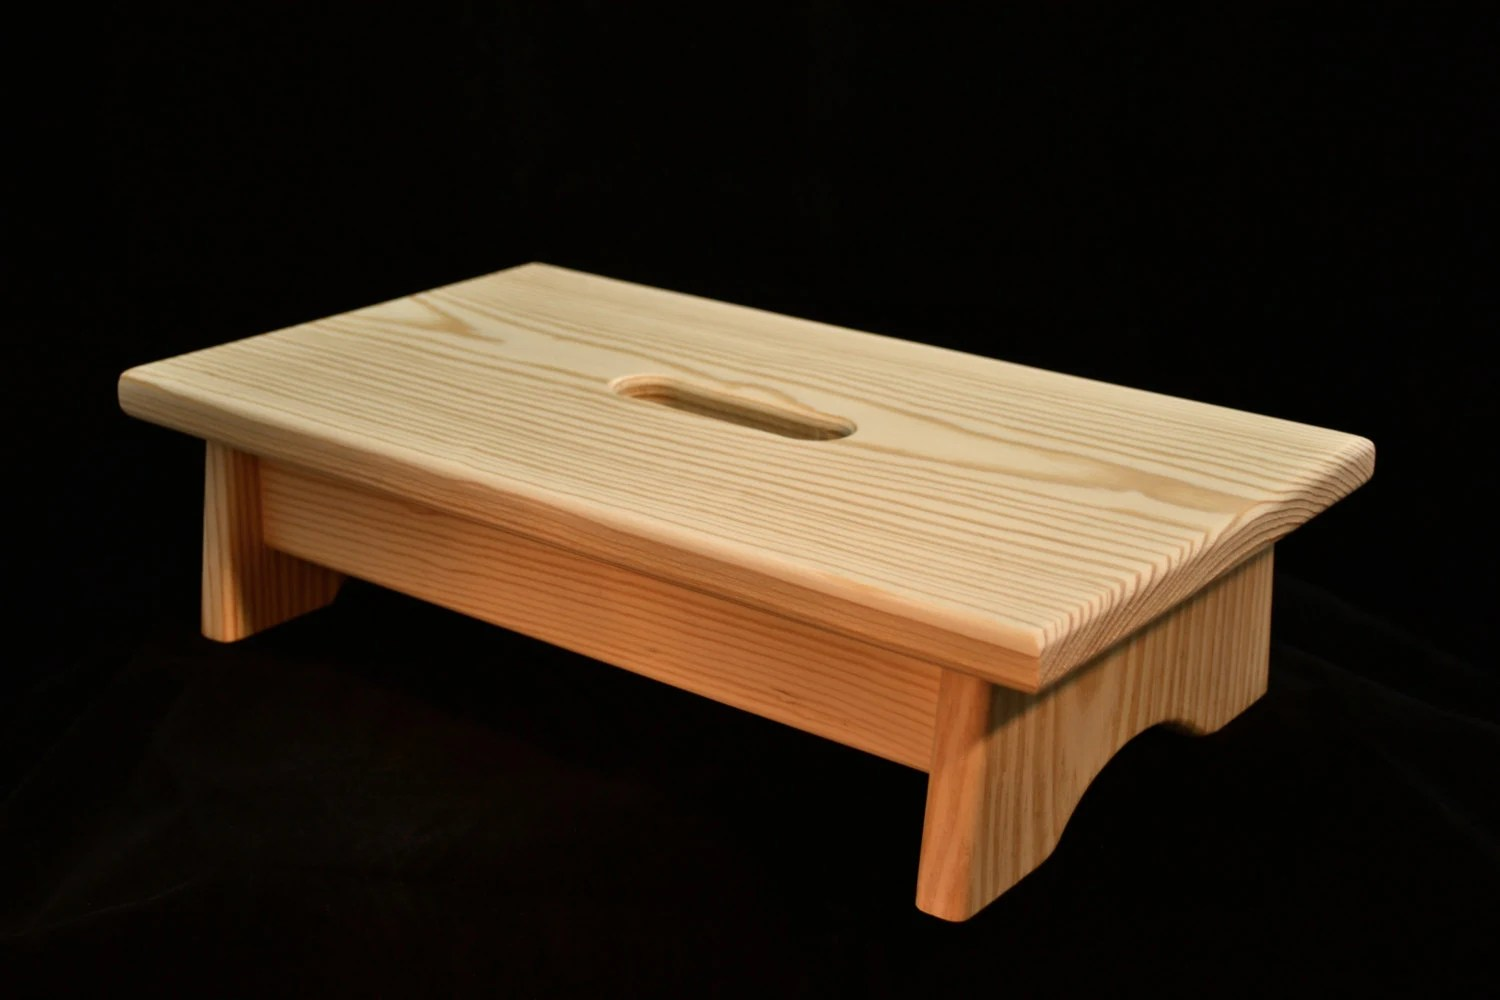 Klein Voetenbankje Small Wood Step Stool With Handle Hole Unfinished Pine